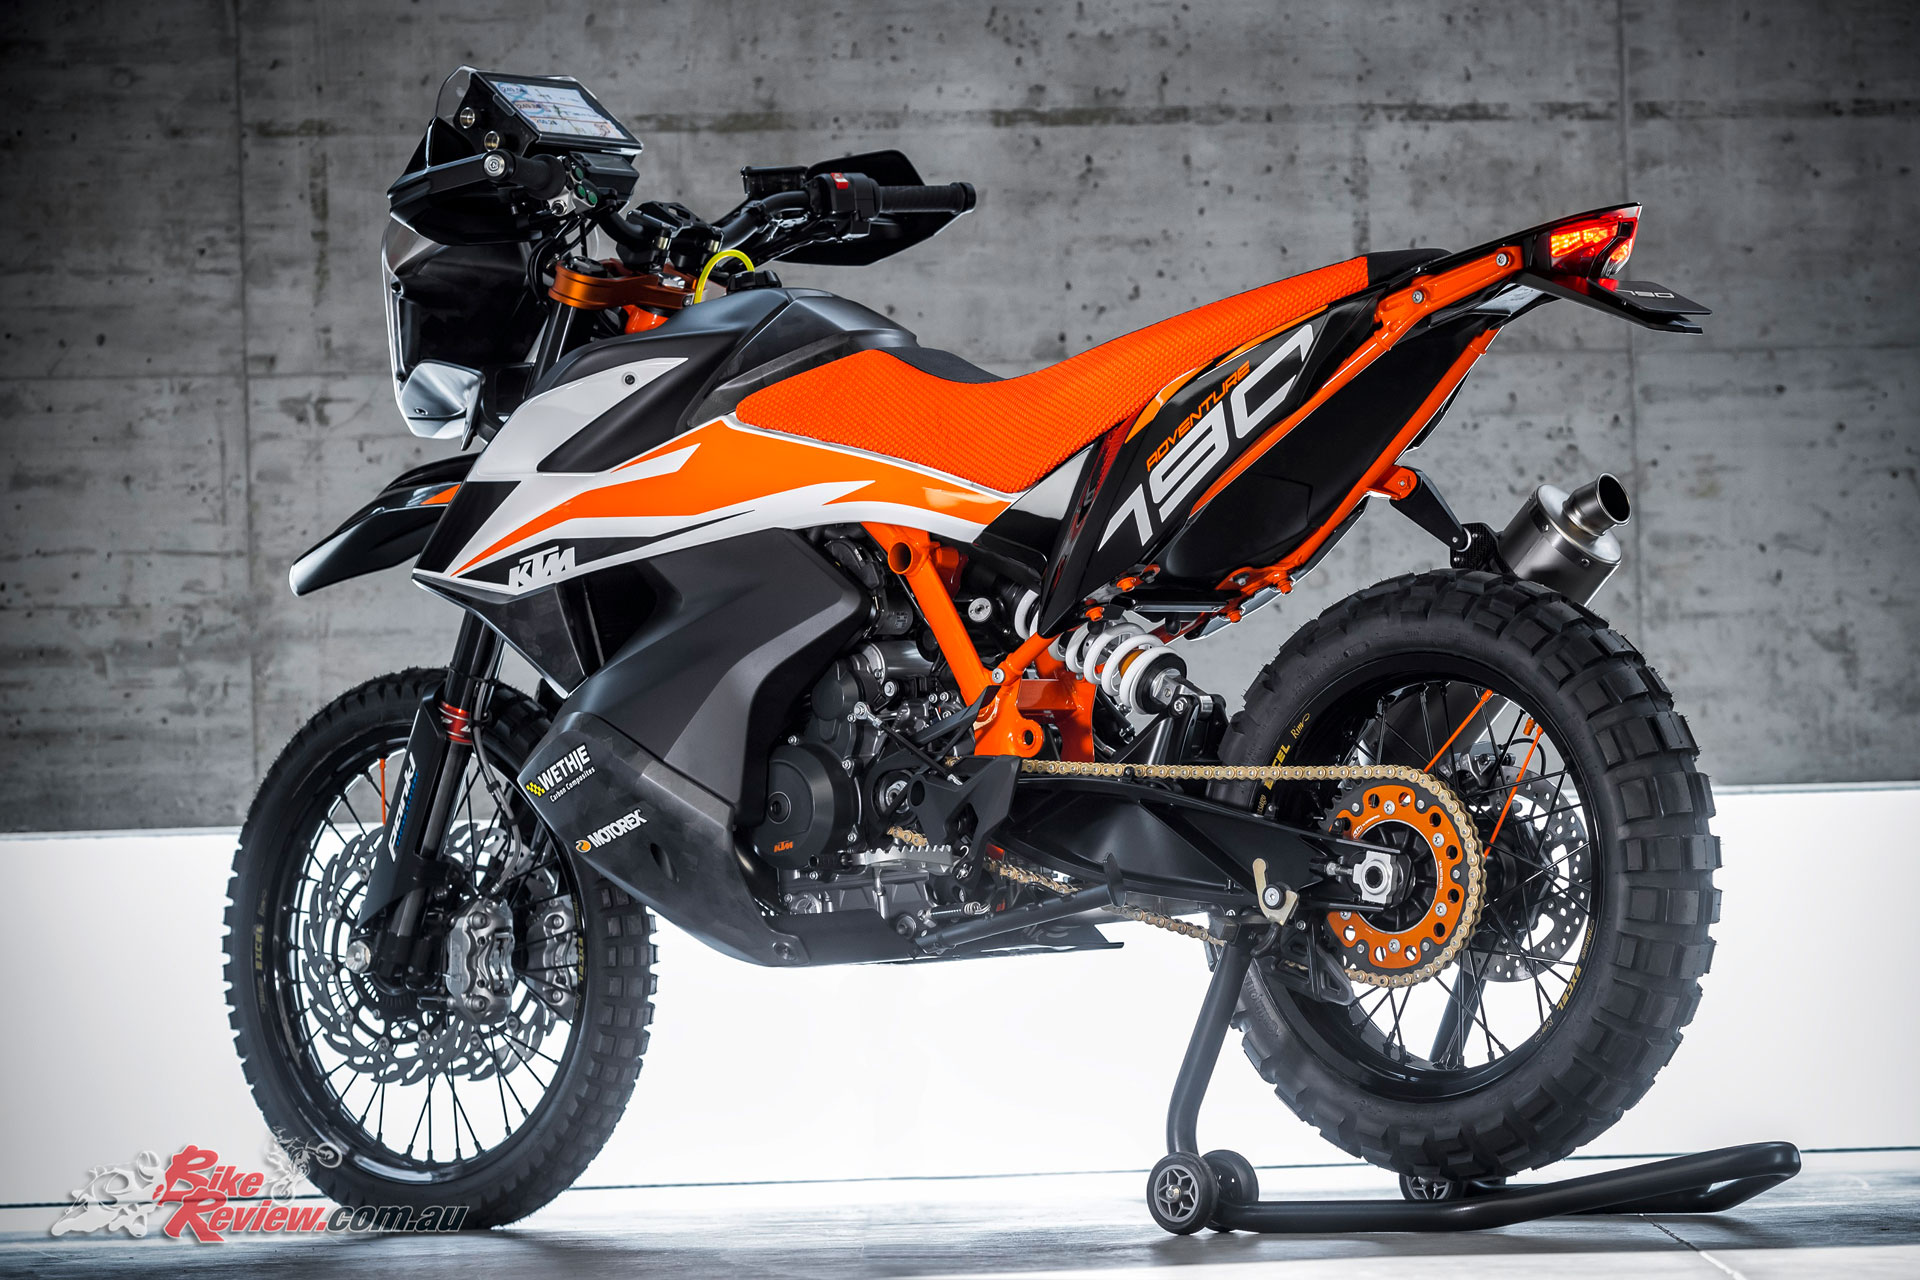 ktm unveil 790 duke 790 adventure r 450 rally at eicma. Black Bedroom Furniture Sets. Home Design Ideas